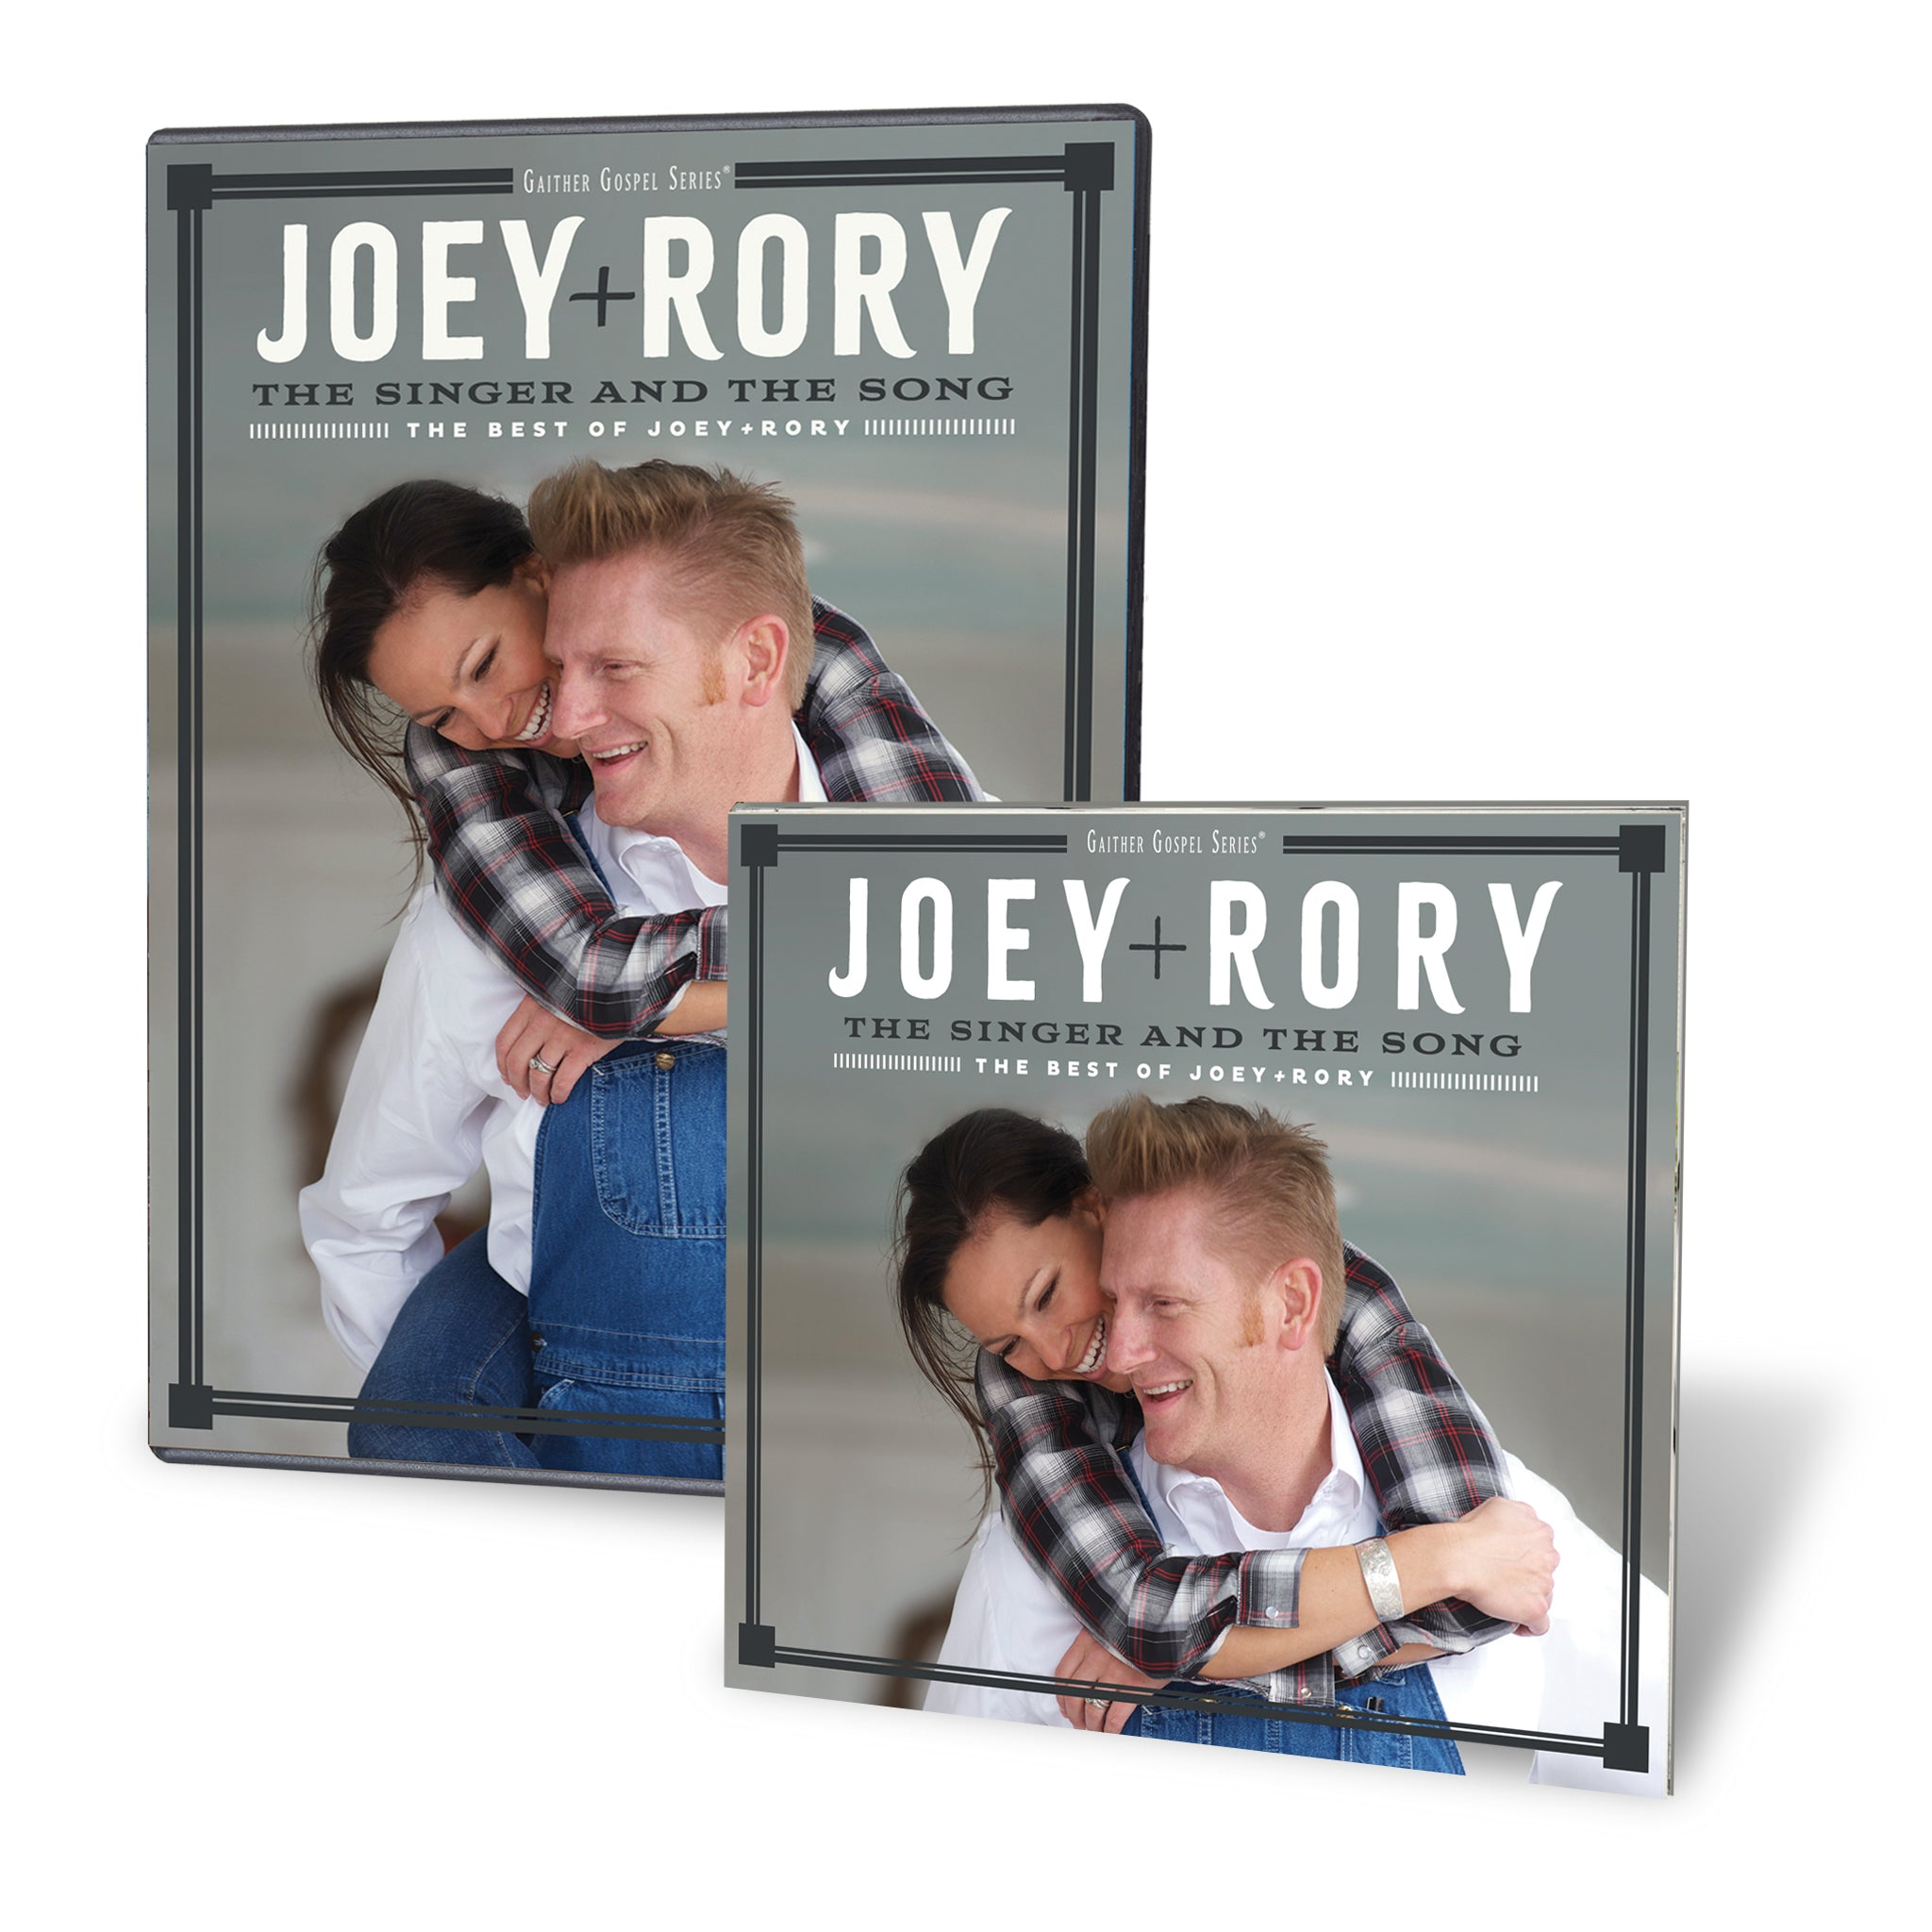 Joey And Rory Cds   www.topsimages.com